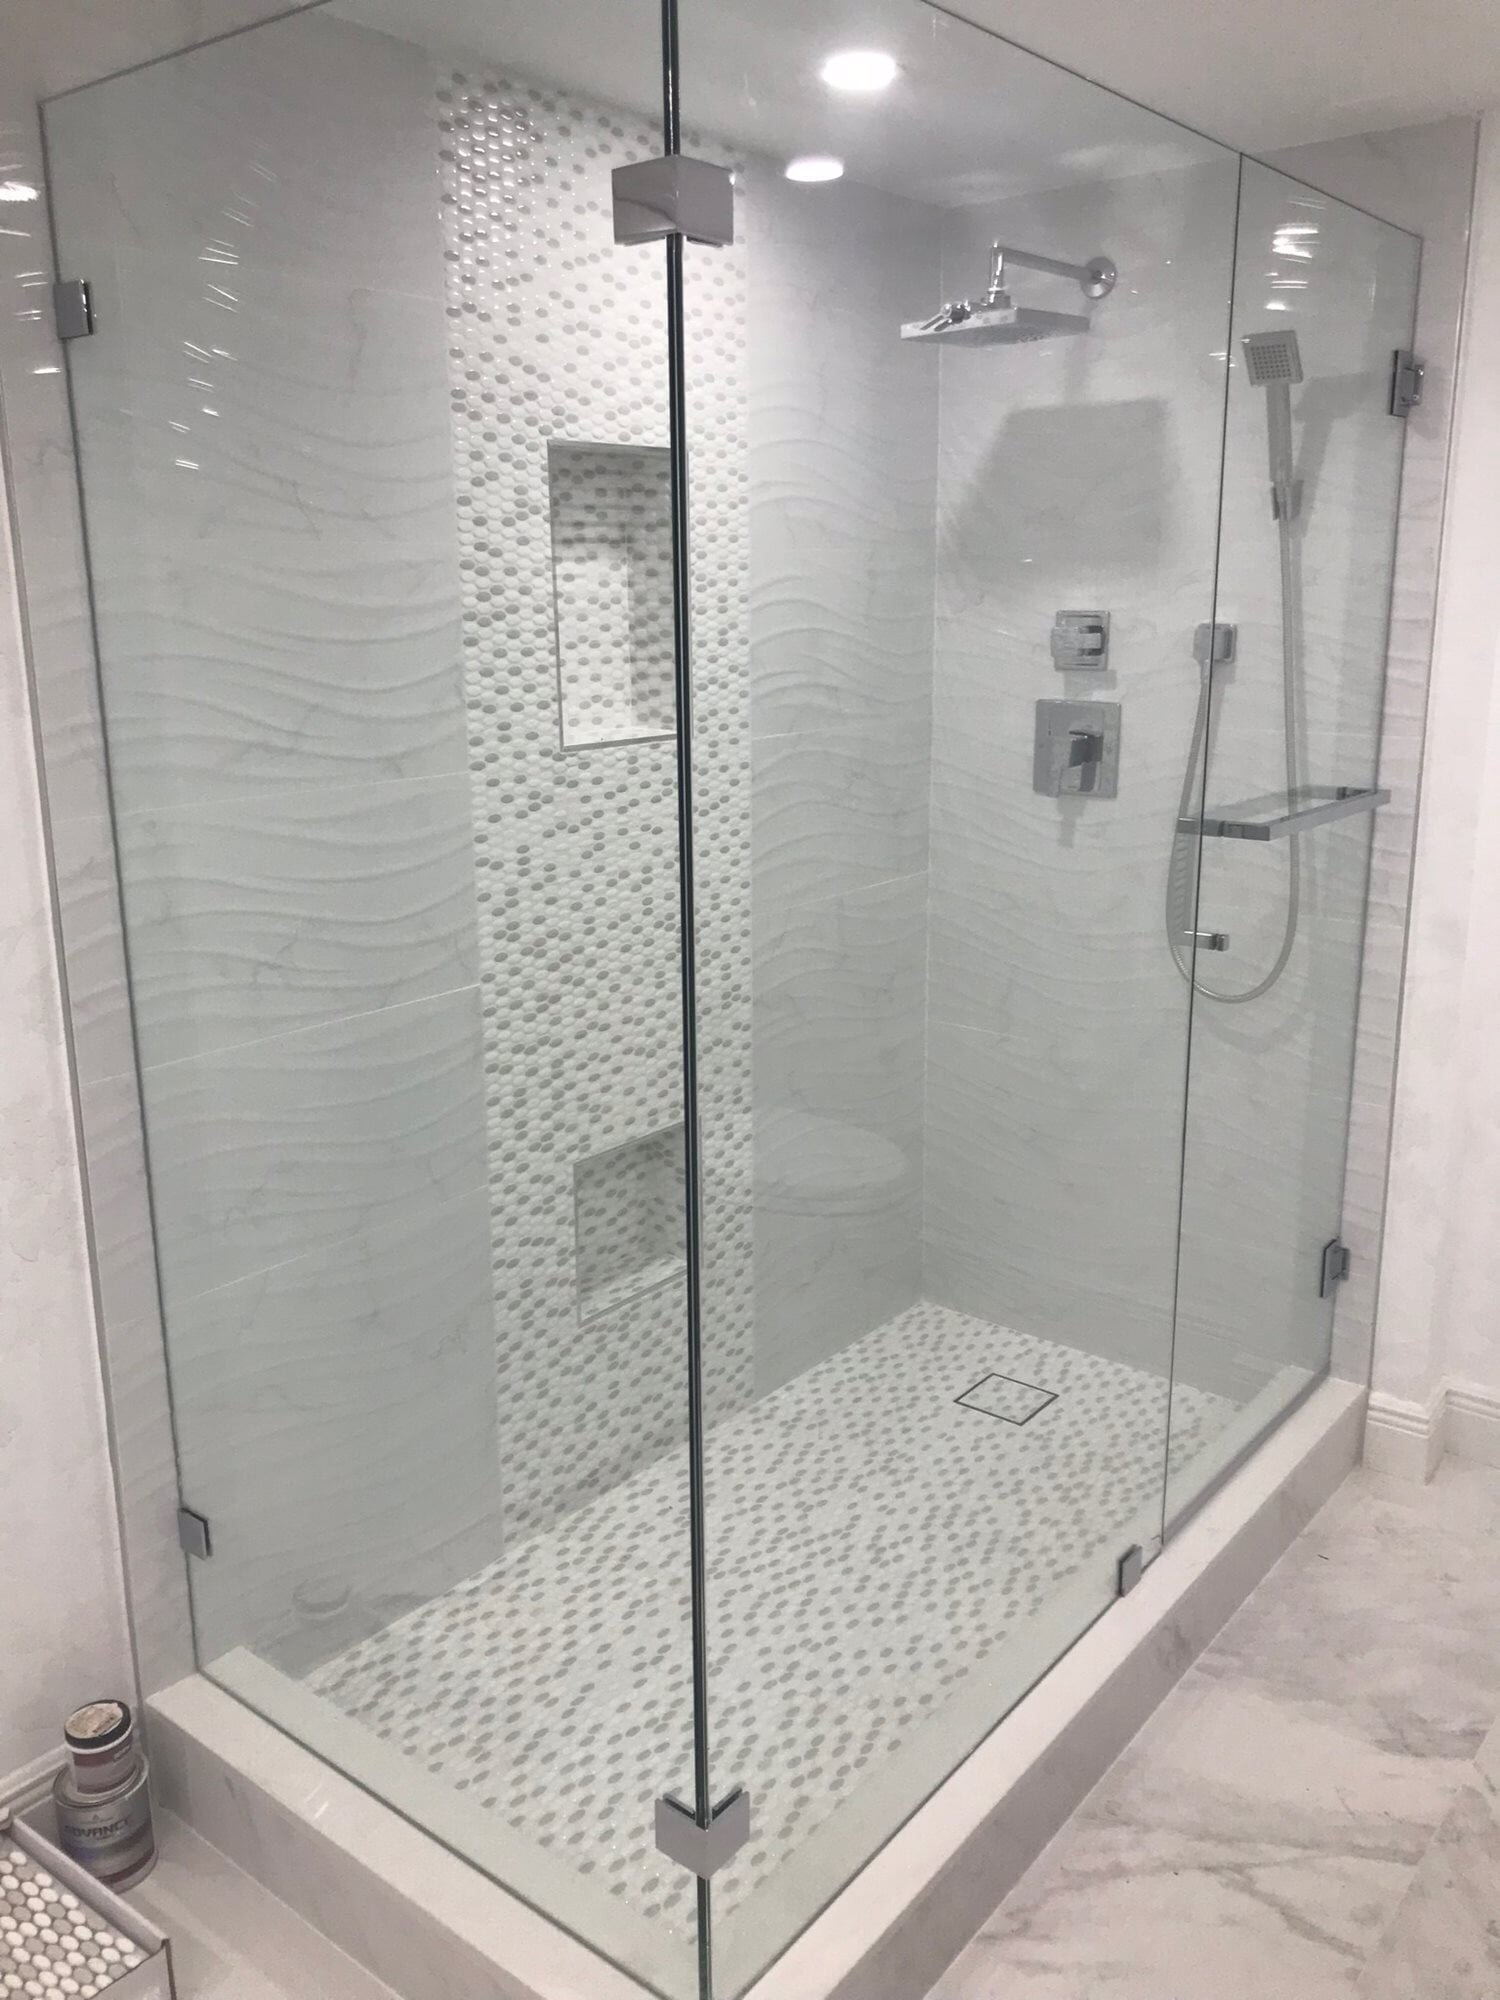 Bright shower design in West Palm Beach, FL from Floors For You Kitchen & Bath